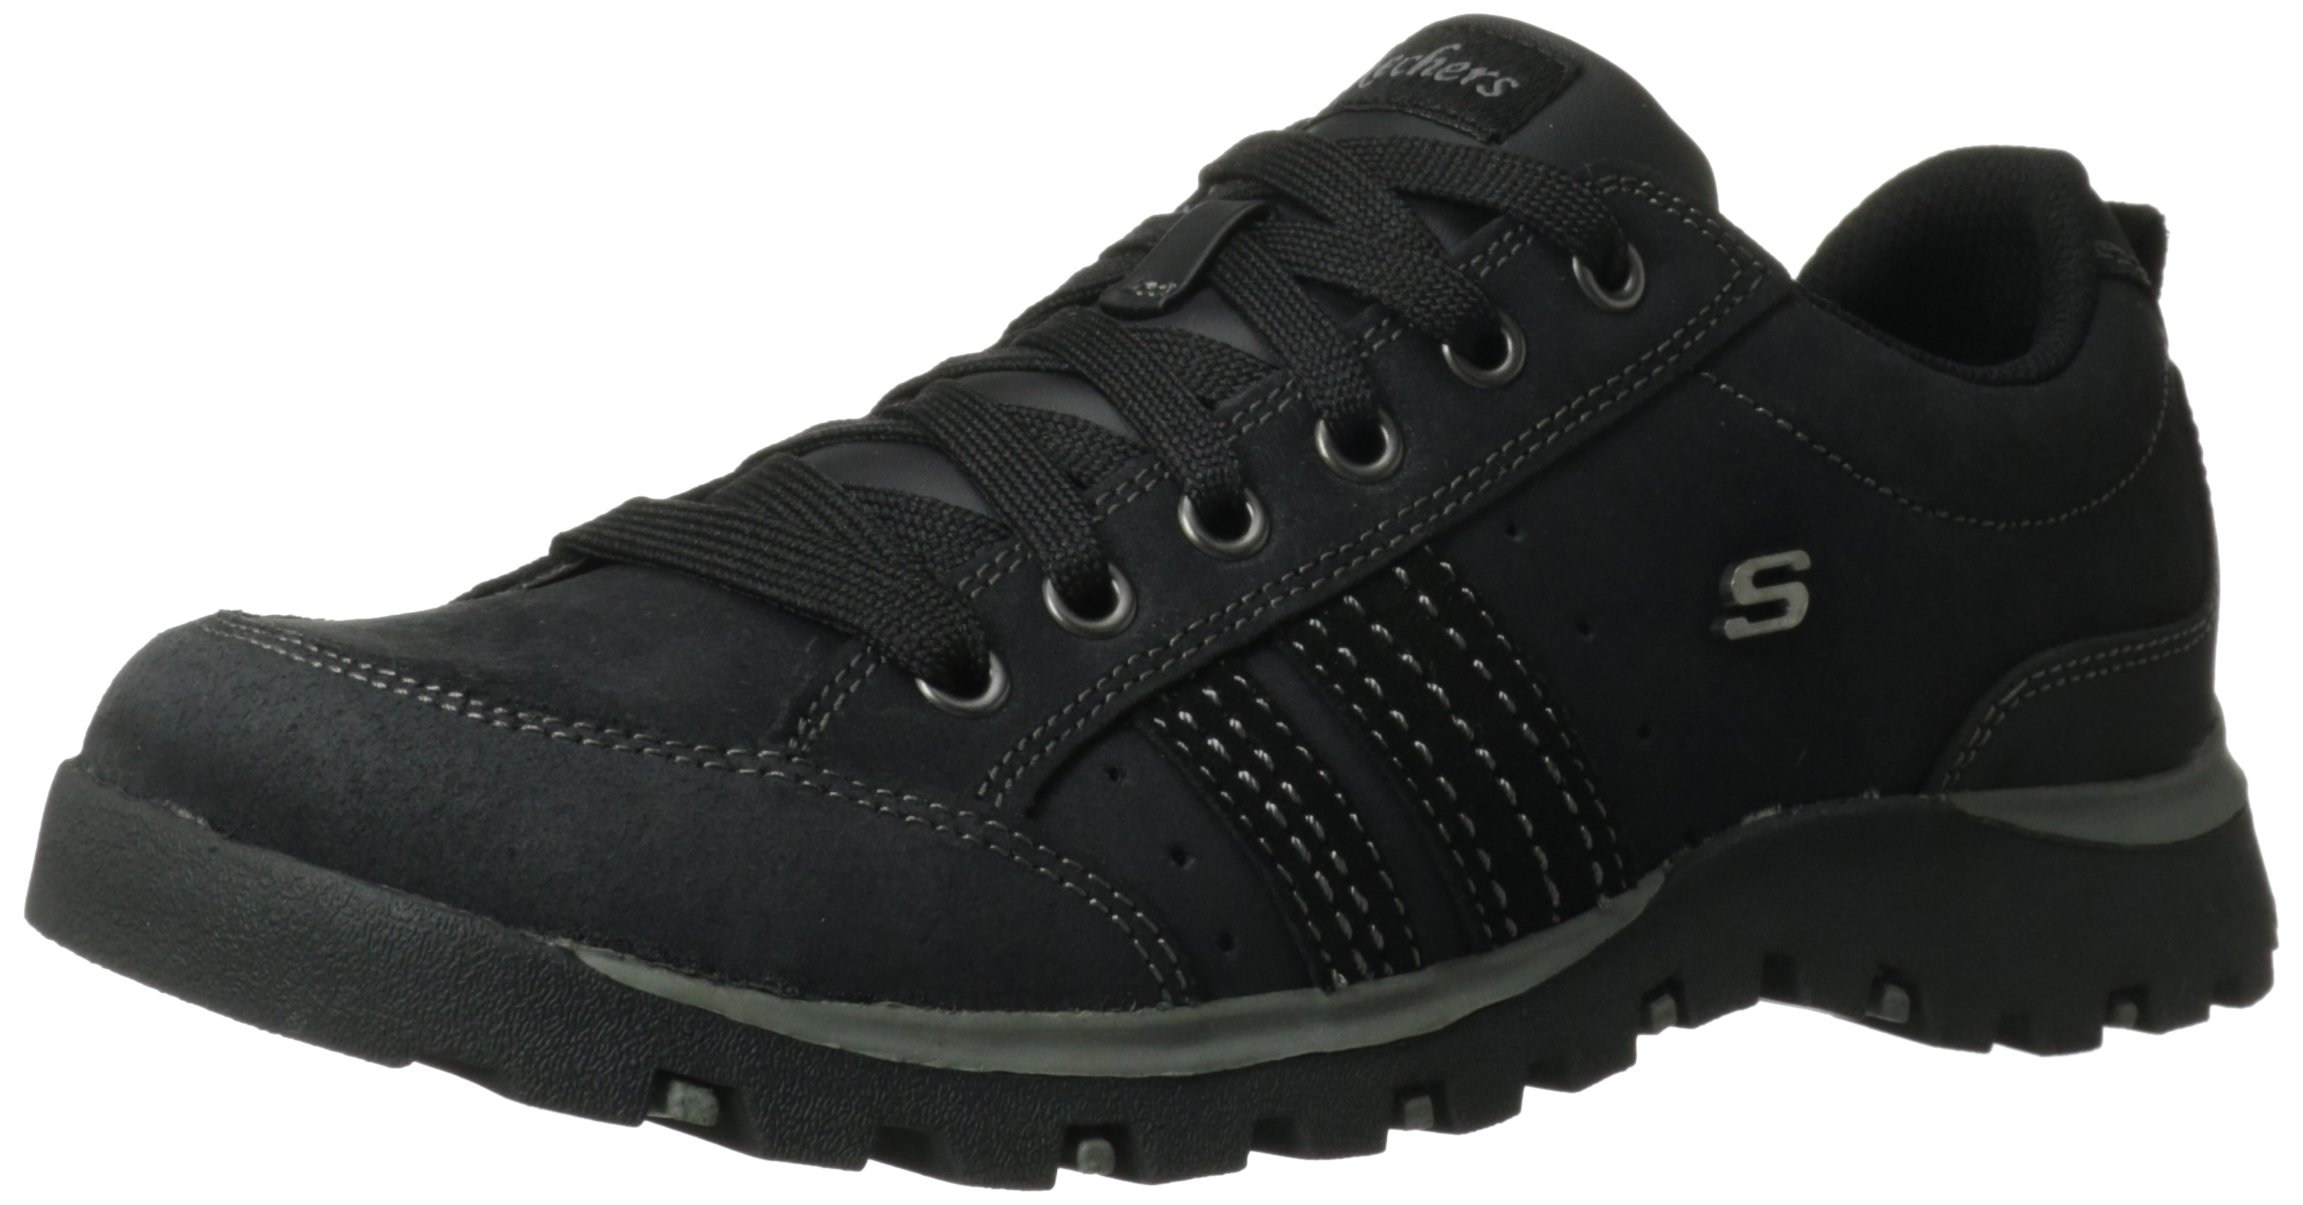 Skechers Women's Grand Jams-Replenish Sneaker